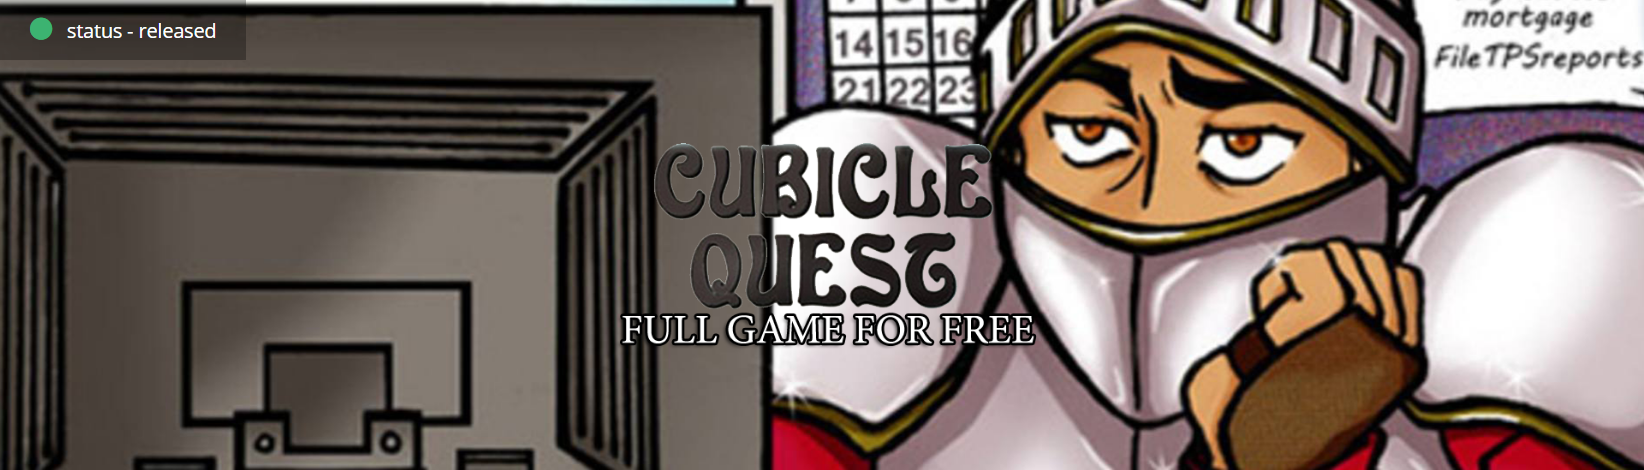 Screenshot_2019-08-16 Cubicle Quest Indiegala Developers.png